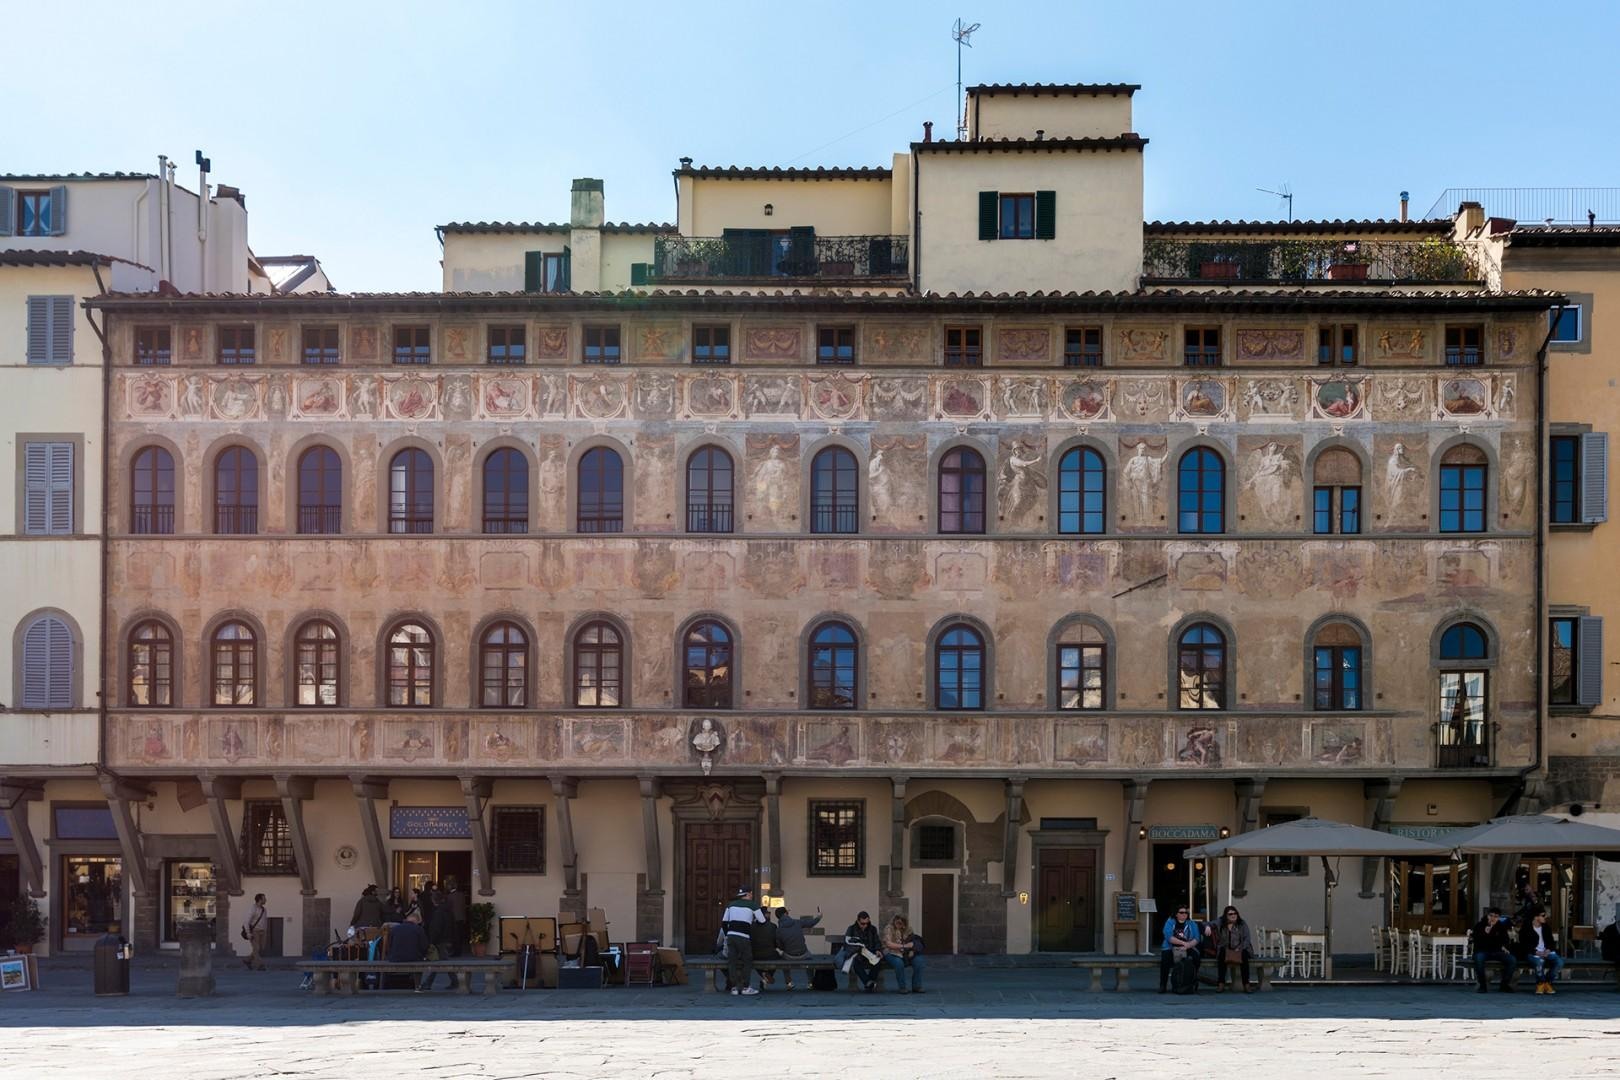 Imagine staying in this historic palace. The exterior is decorated with colorful frescoes from 1620.